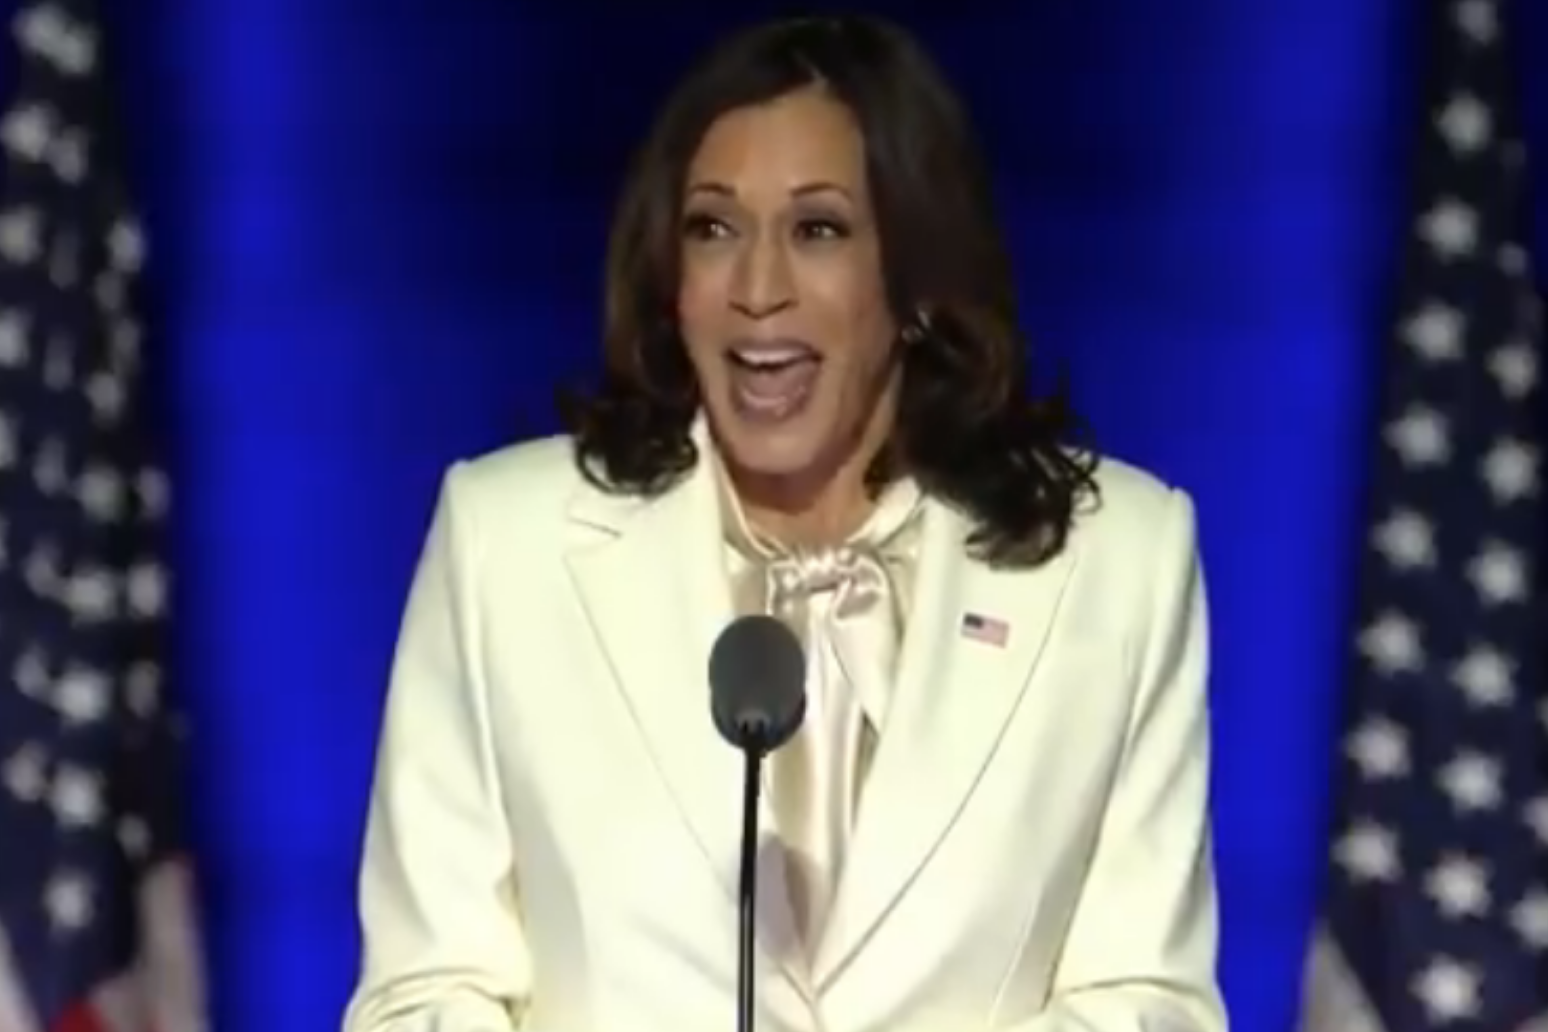 I may be the first, I won't be the last: Kamala Harris reflects on historic win